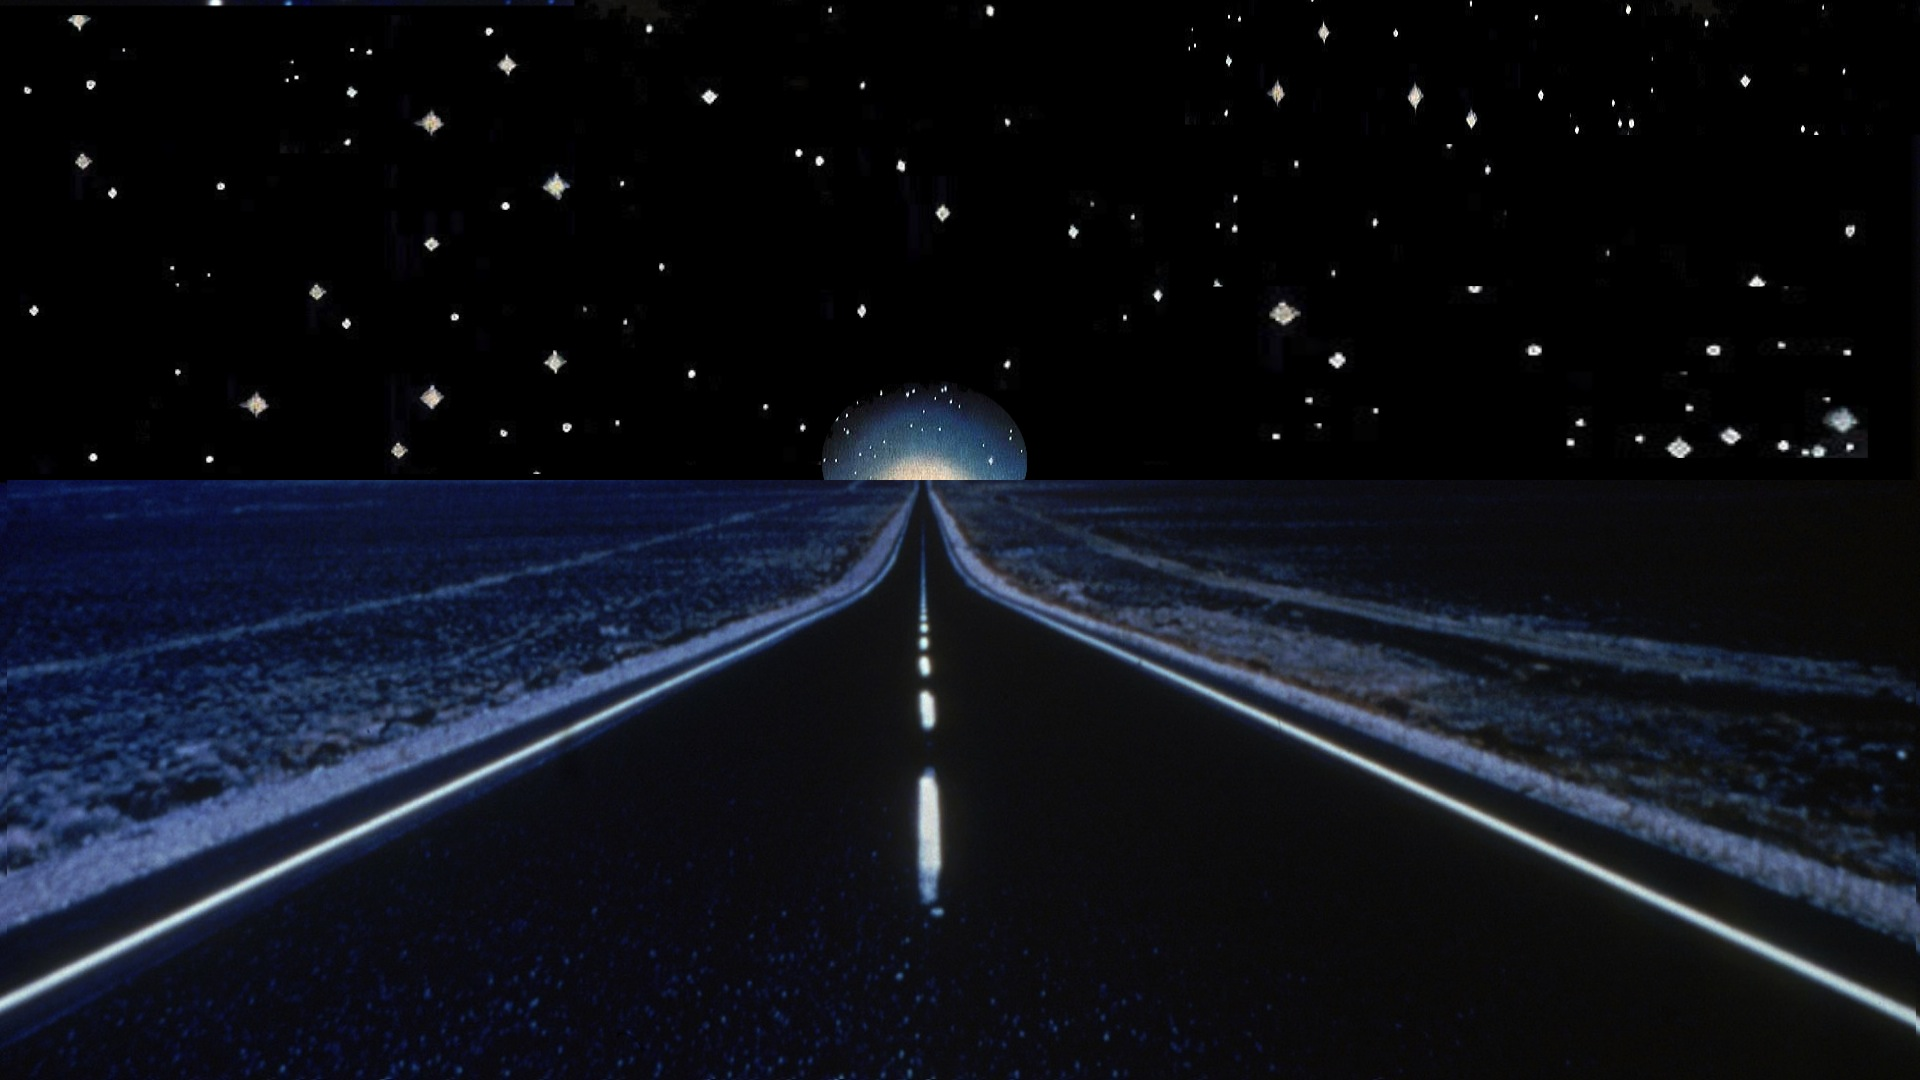 CLOSE_ENCOUNTERS_OF_THE_THIRD_KIND_sci_fi_drama_thriller_road_stars_sky_night_poster_f_1920x1080.jpg